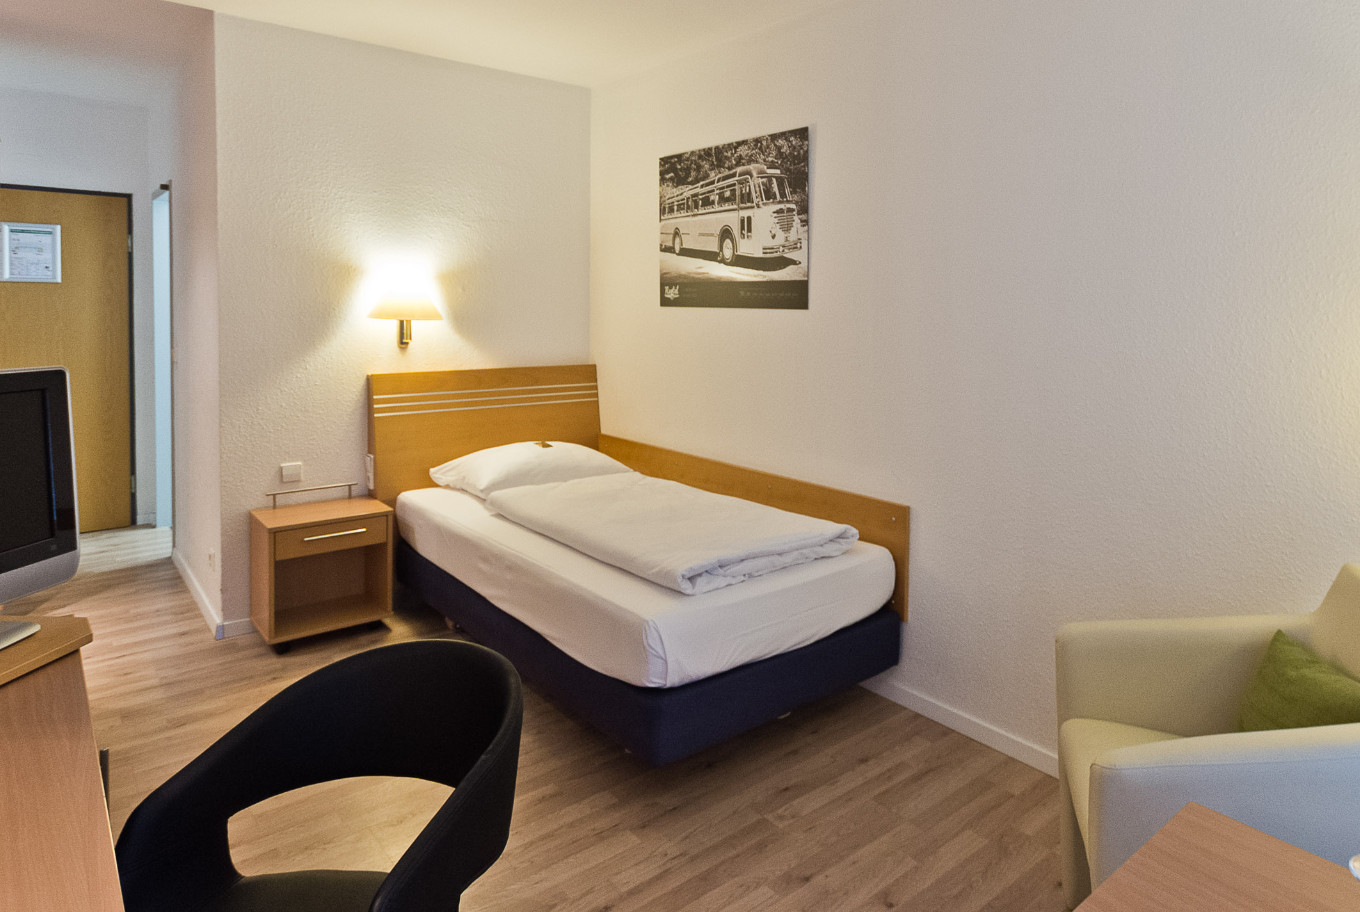 Visit our Arthotel ANA Neotel and sleep in one of our single rooms.